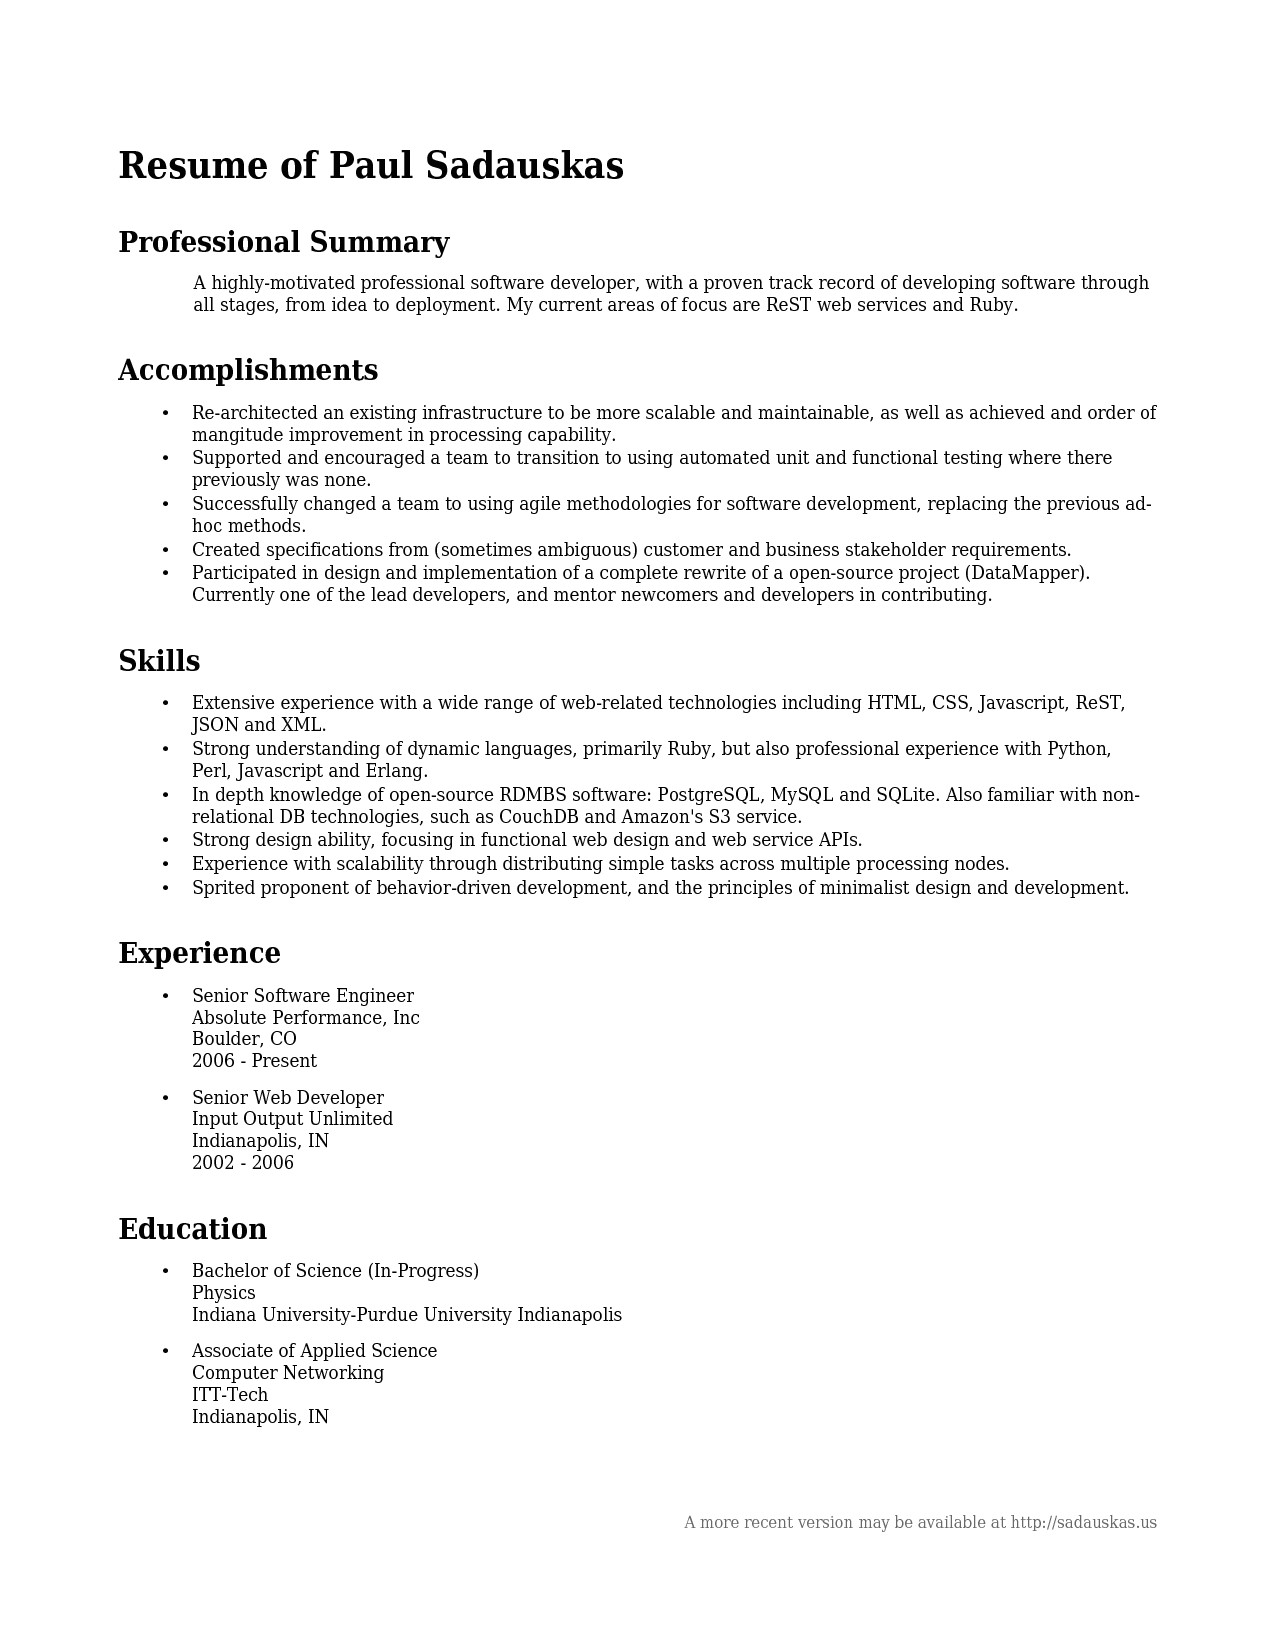 Samples Of Professional Summary for A Resume Professional Resume Summary 2016 Samplebusinessresume